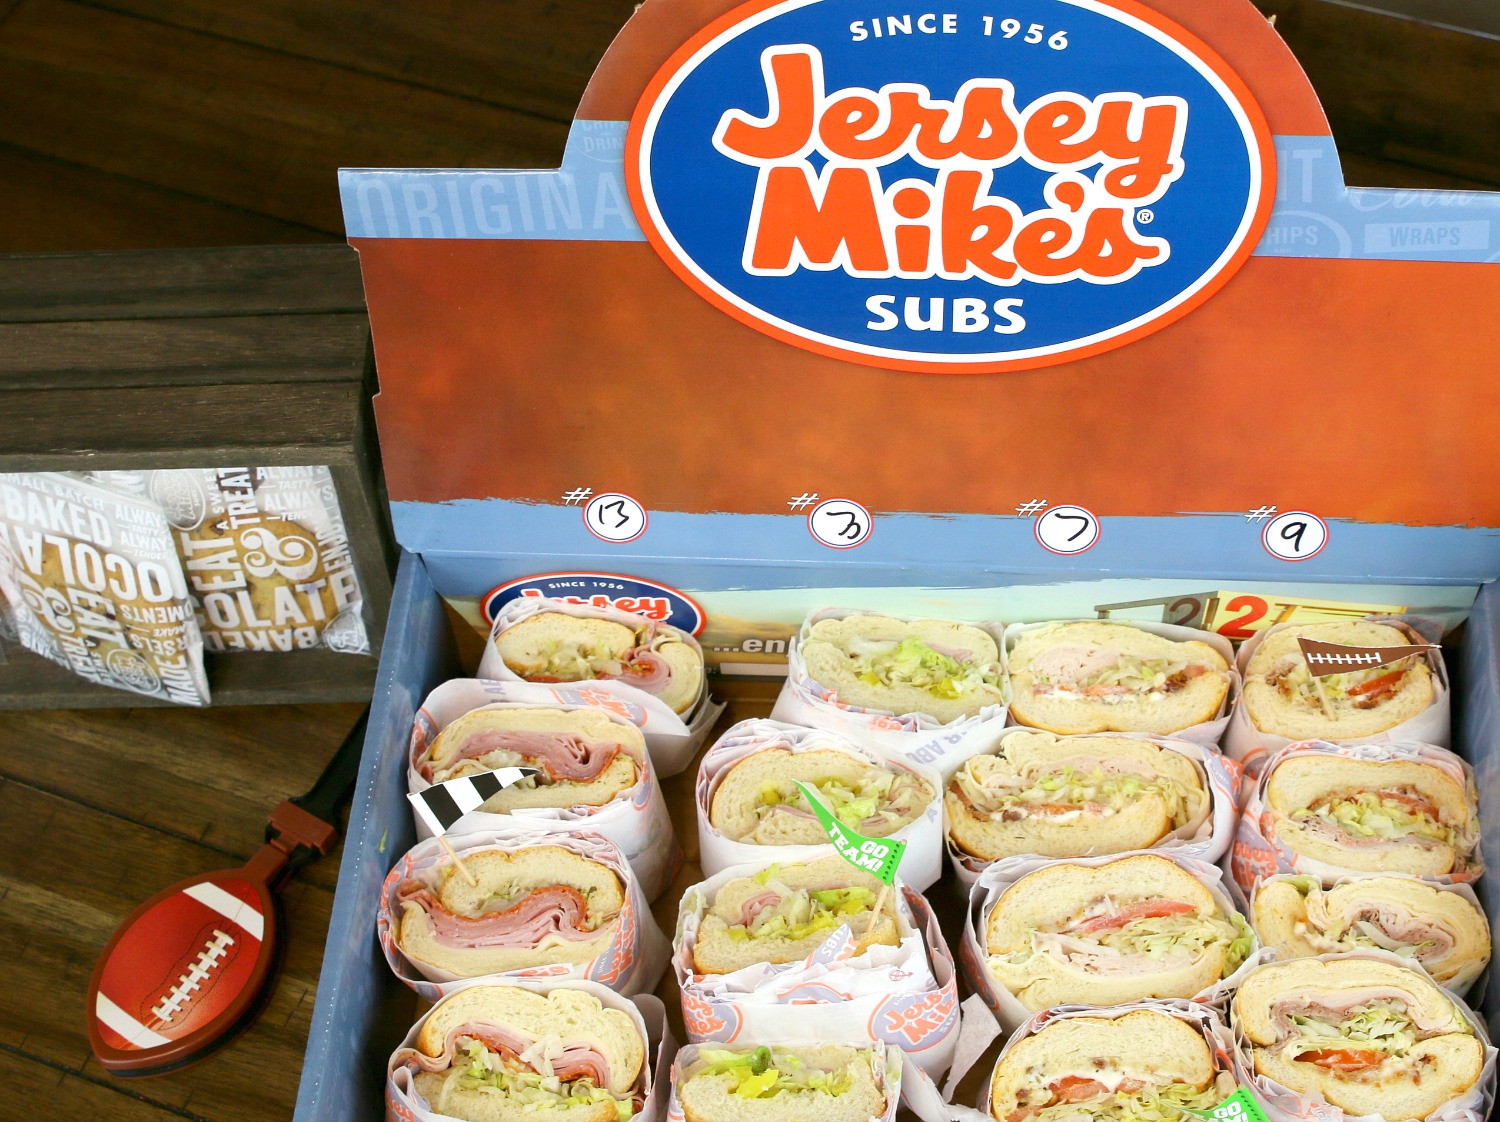 Jersey Mike's Subs catering box